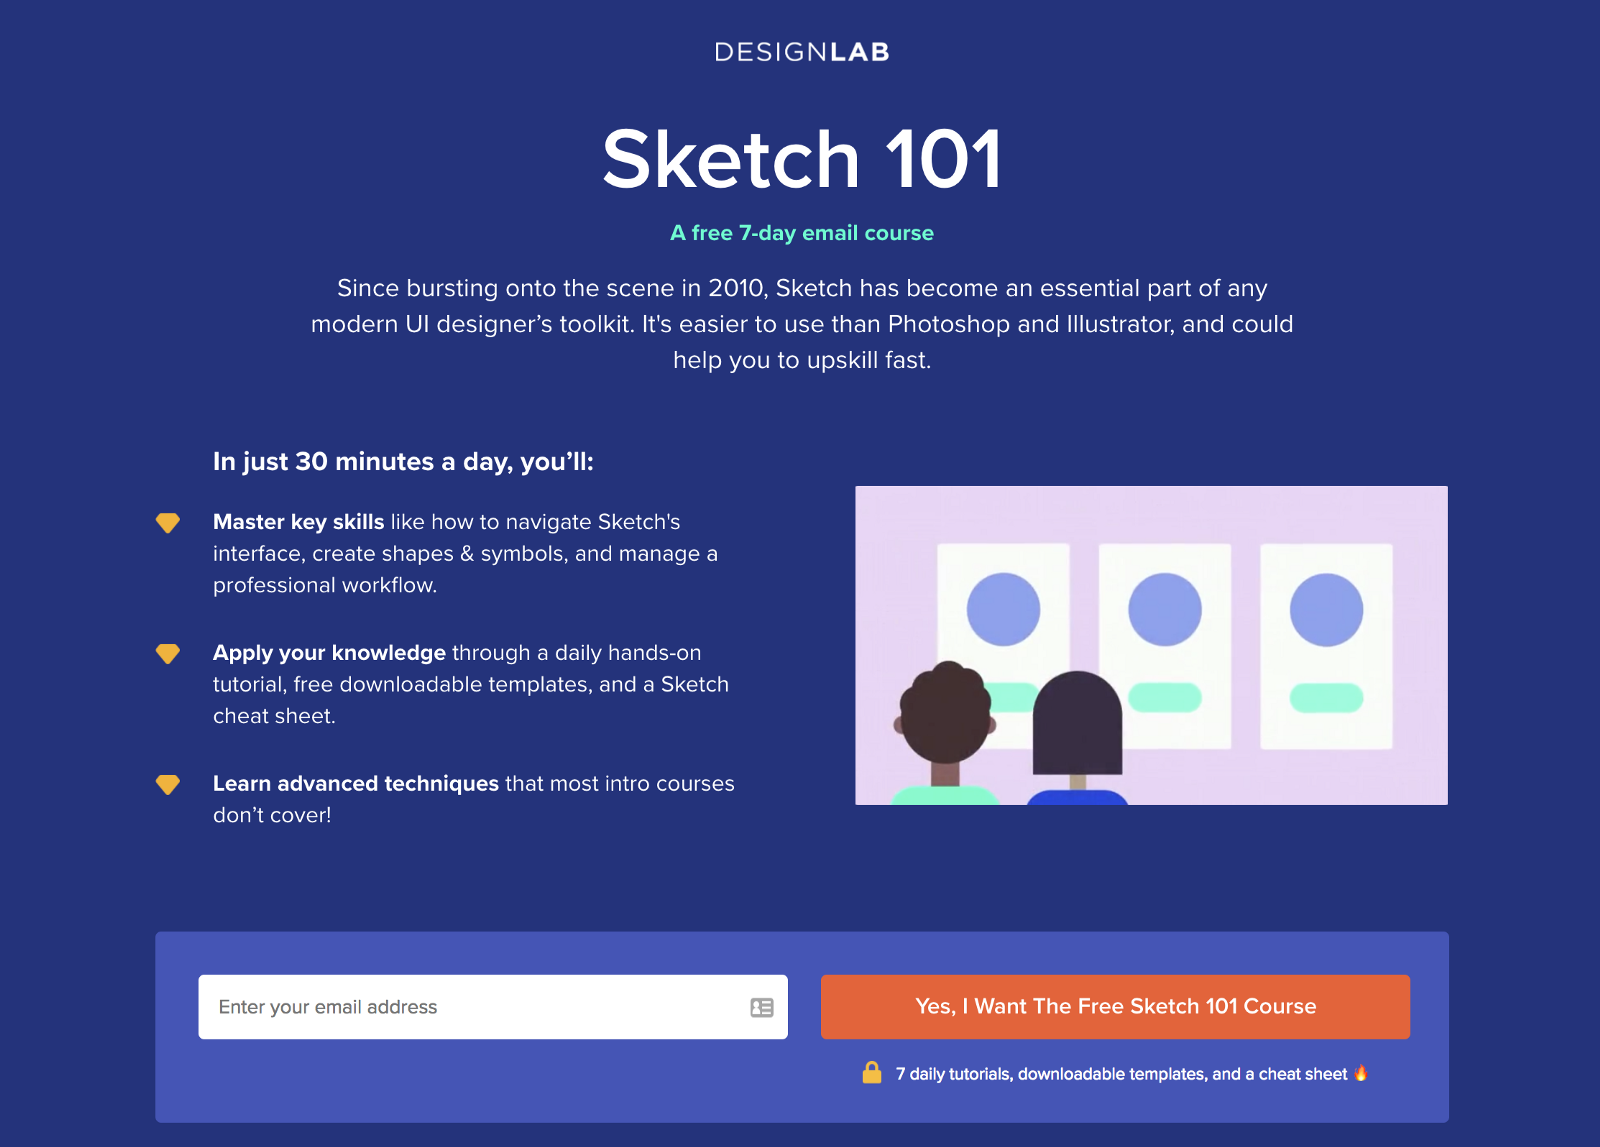 11 Tips For Designing High-Converting Landing Pages